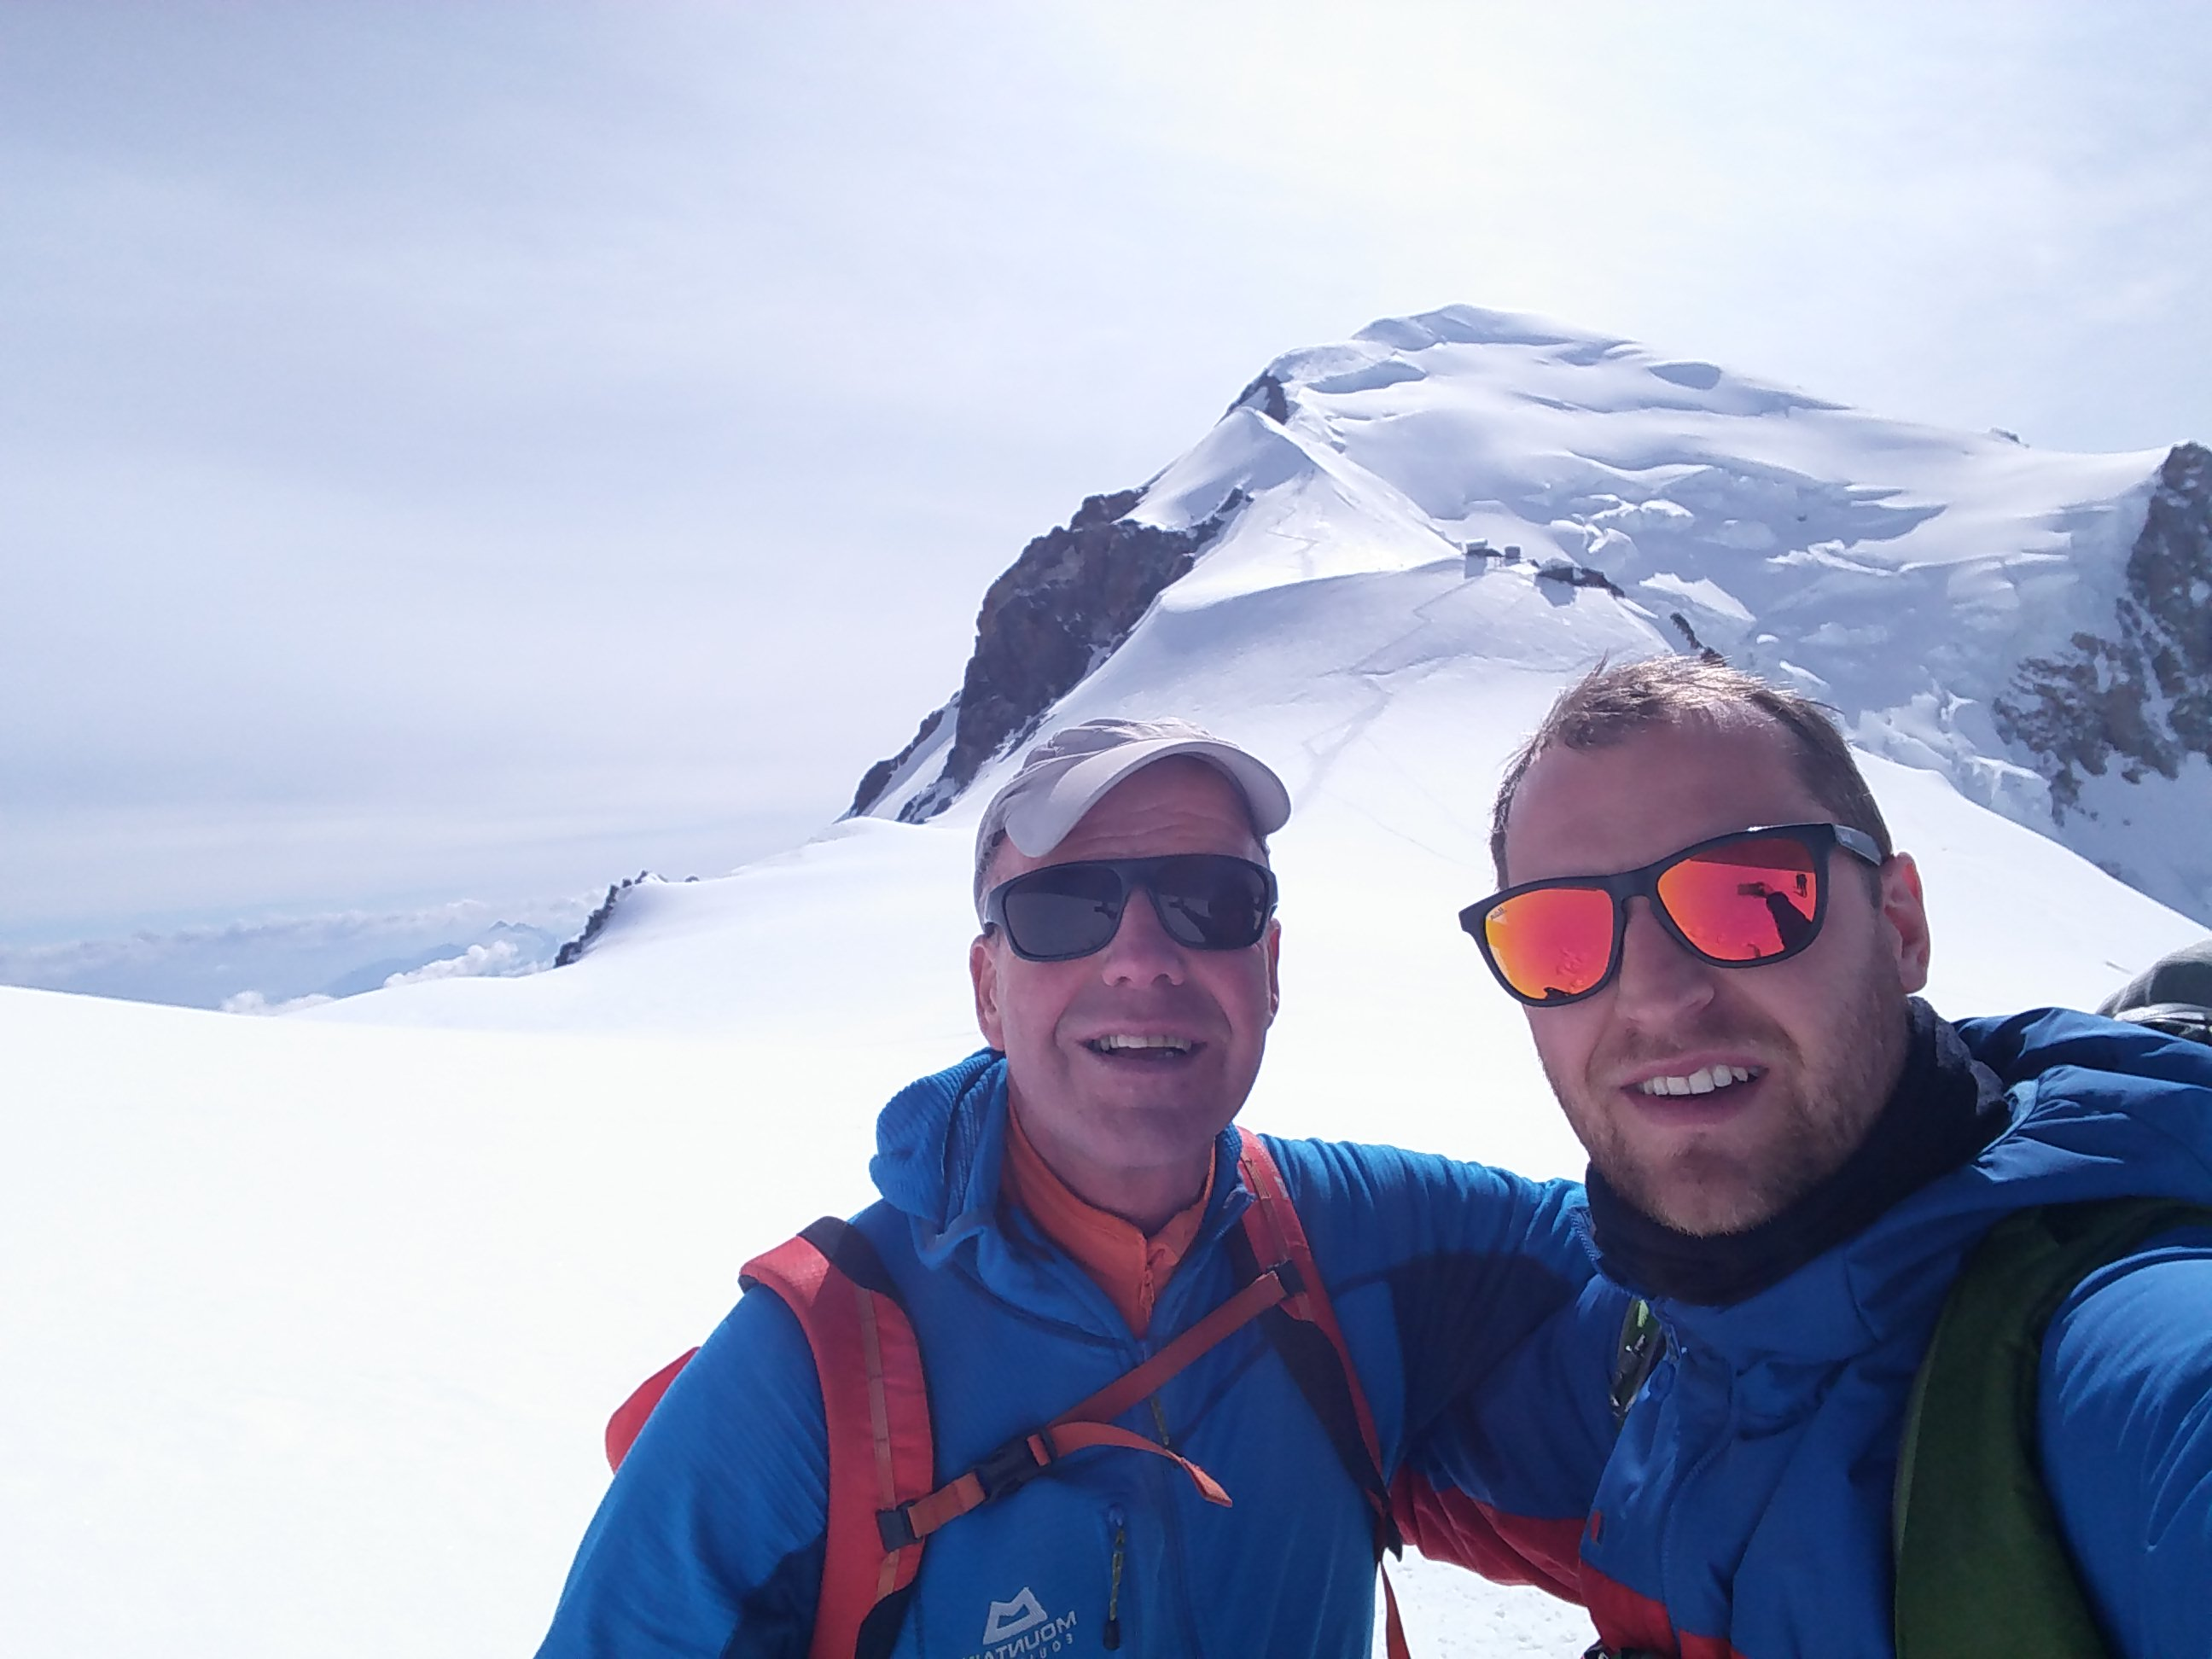 Me and Sandy Allan on Dome du Gouter